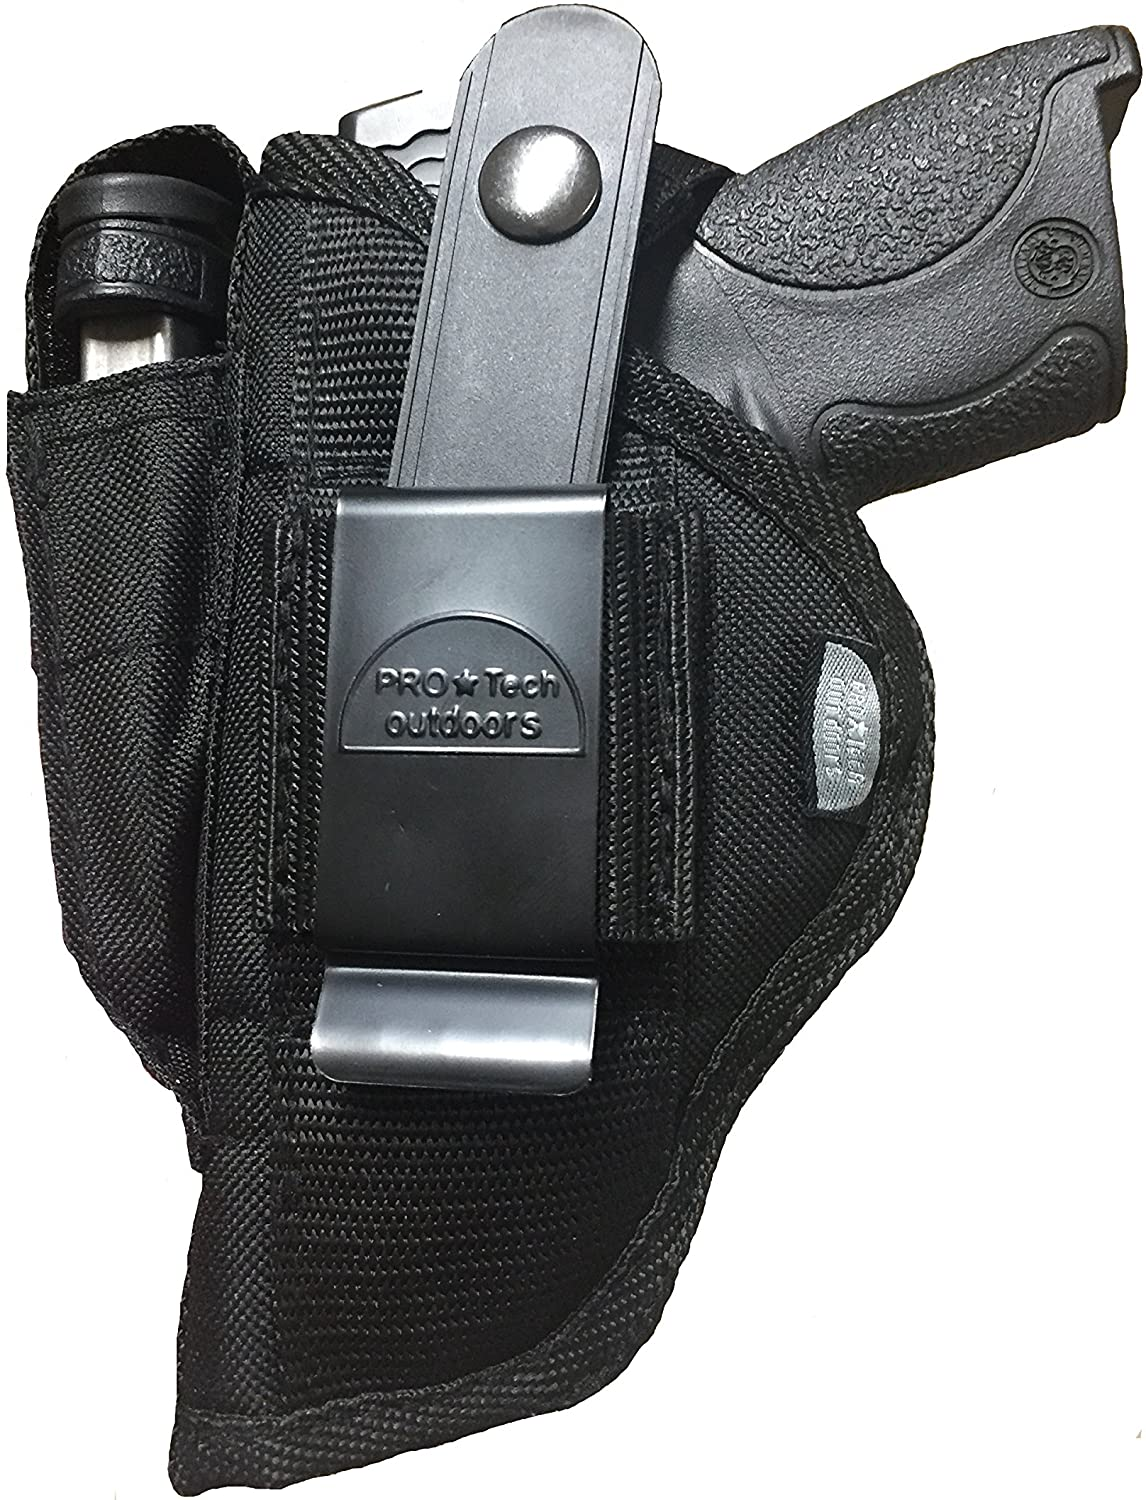 Taurus G2C and G3 Sales of SALE items from new works Industry No. 1 Gun Holster GX4